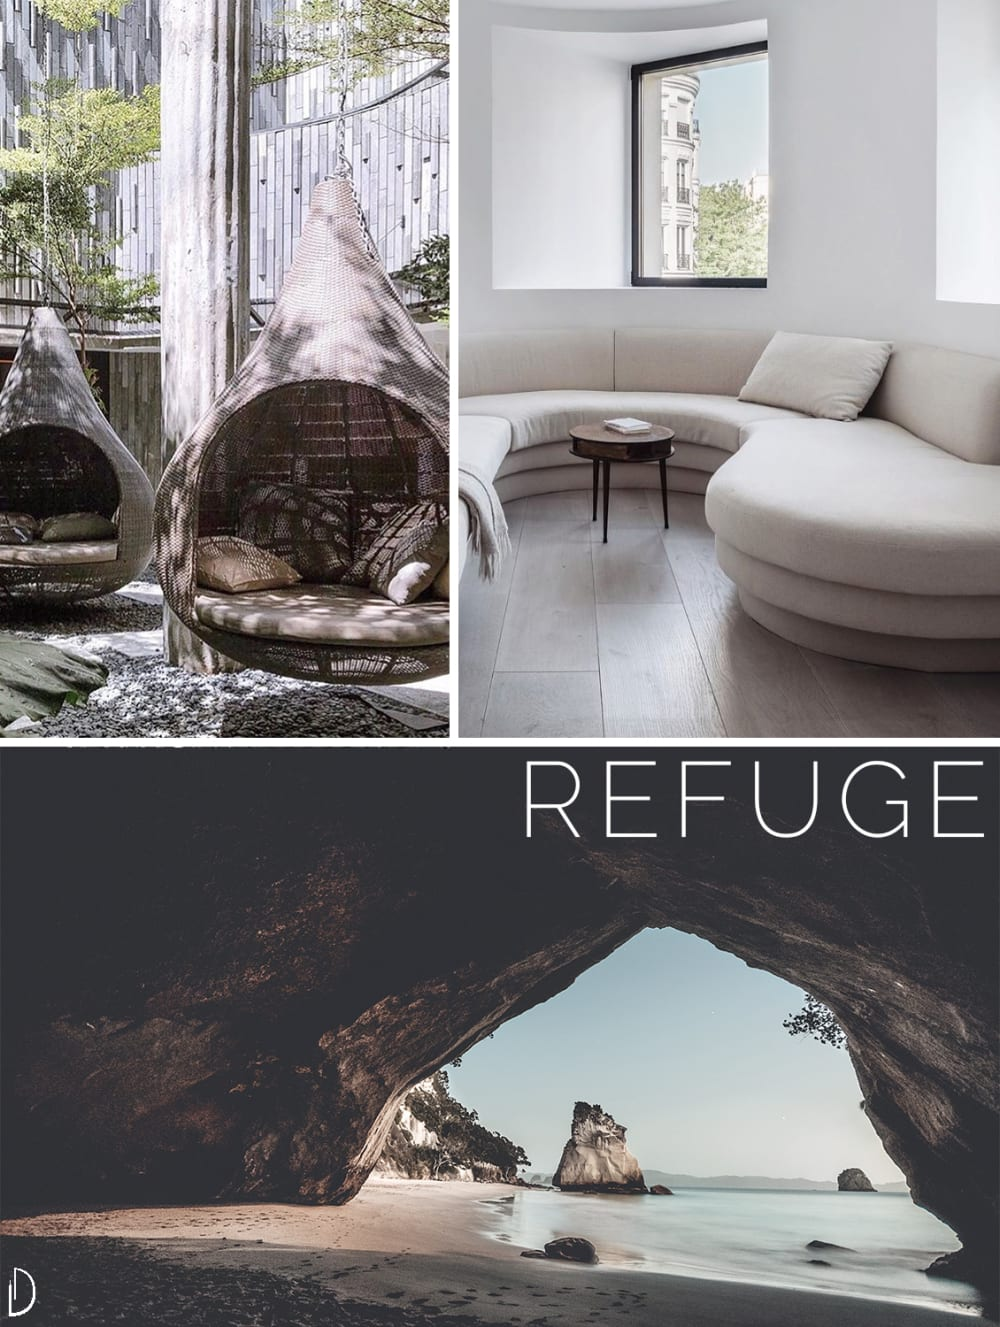 "Biophilic moodboard showing a sense of refuge: hanging enveloping chairs, a curved sofa, a cave on the beach.<span class=""sr-only""> (opened in a new window/tab)</span>"